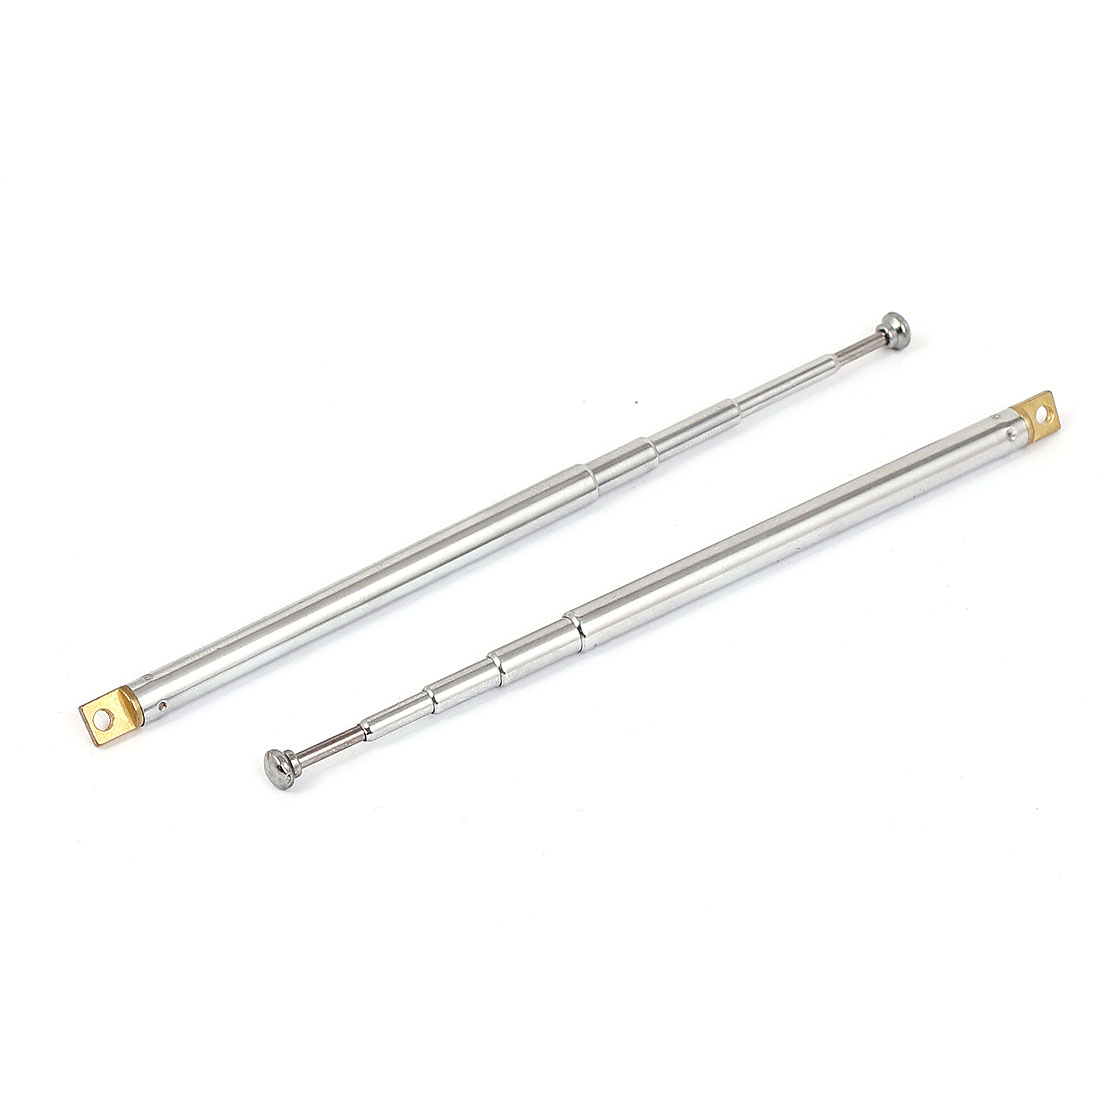 "2pcs 10"" 26cm Length 5 Sections Telescopic Antenna Aerial Mast for Remote Control AM FM Radio"